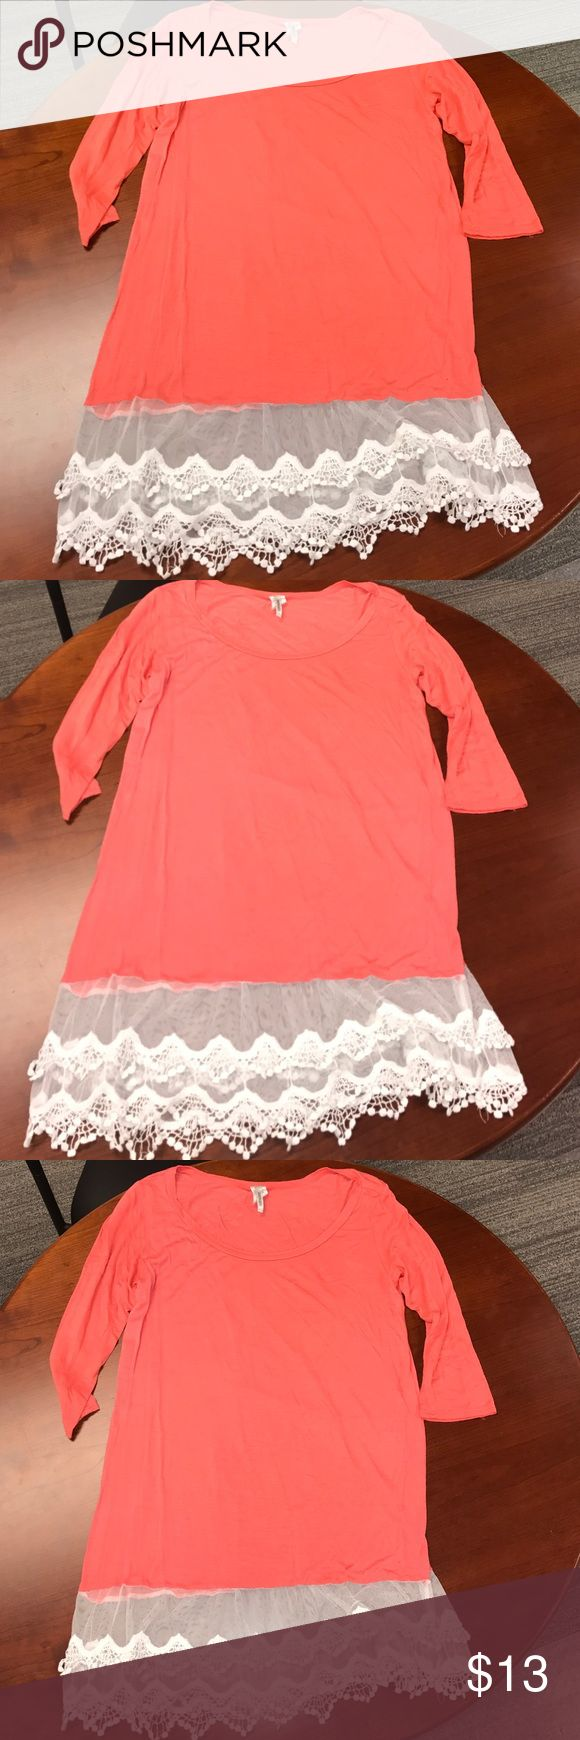 Nordstrom White Lace Coral Tunic Dress or Shirt S Nordstrom Coral Tunic Dress or wear as Shirt. Size Small. Super soft and the lace is very cute! I wore as a dress but it's pretty short with where the lace starts so up to you! Nordstrom Dresses